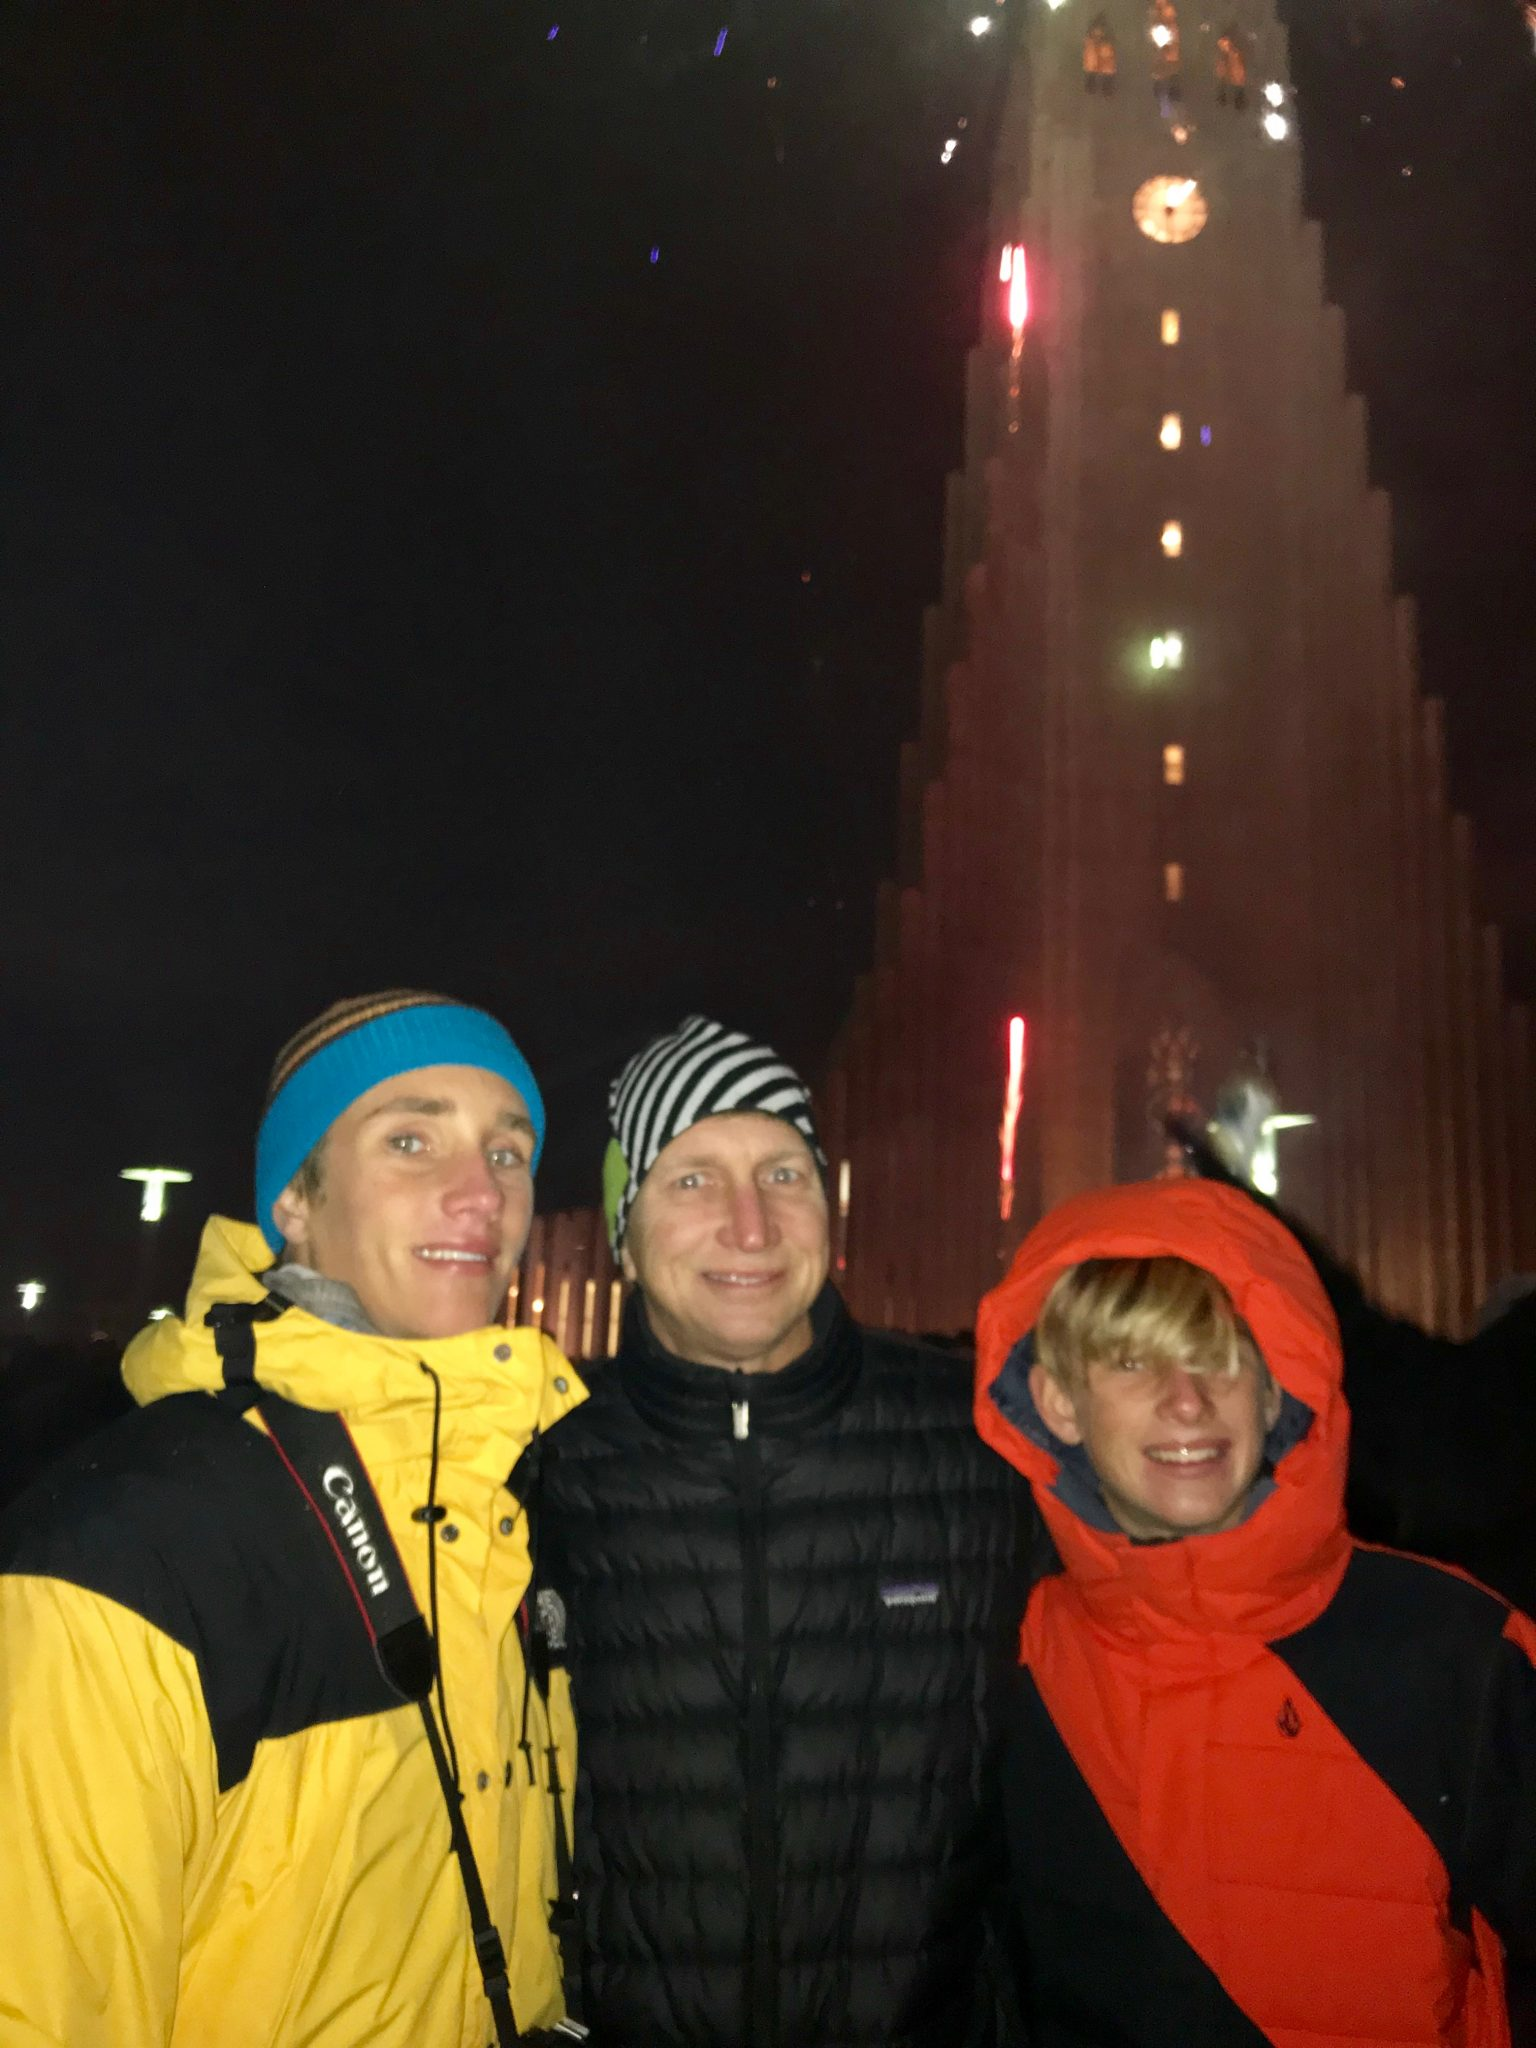 New years eve fireworks at Hallgrimskirkja church in Reykjavik